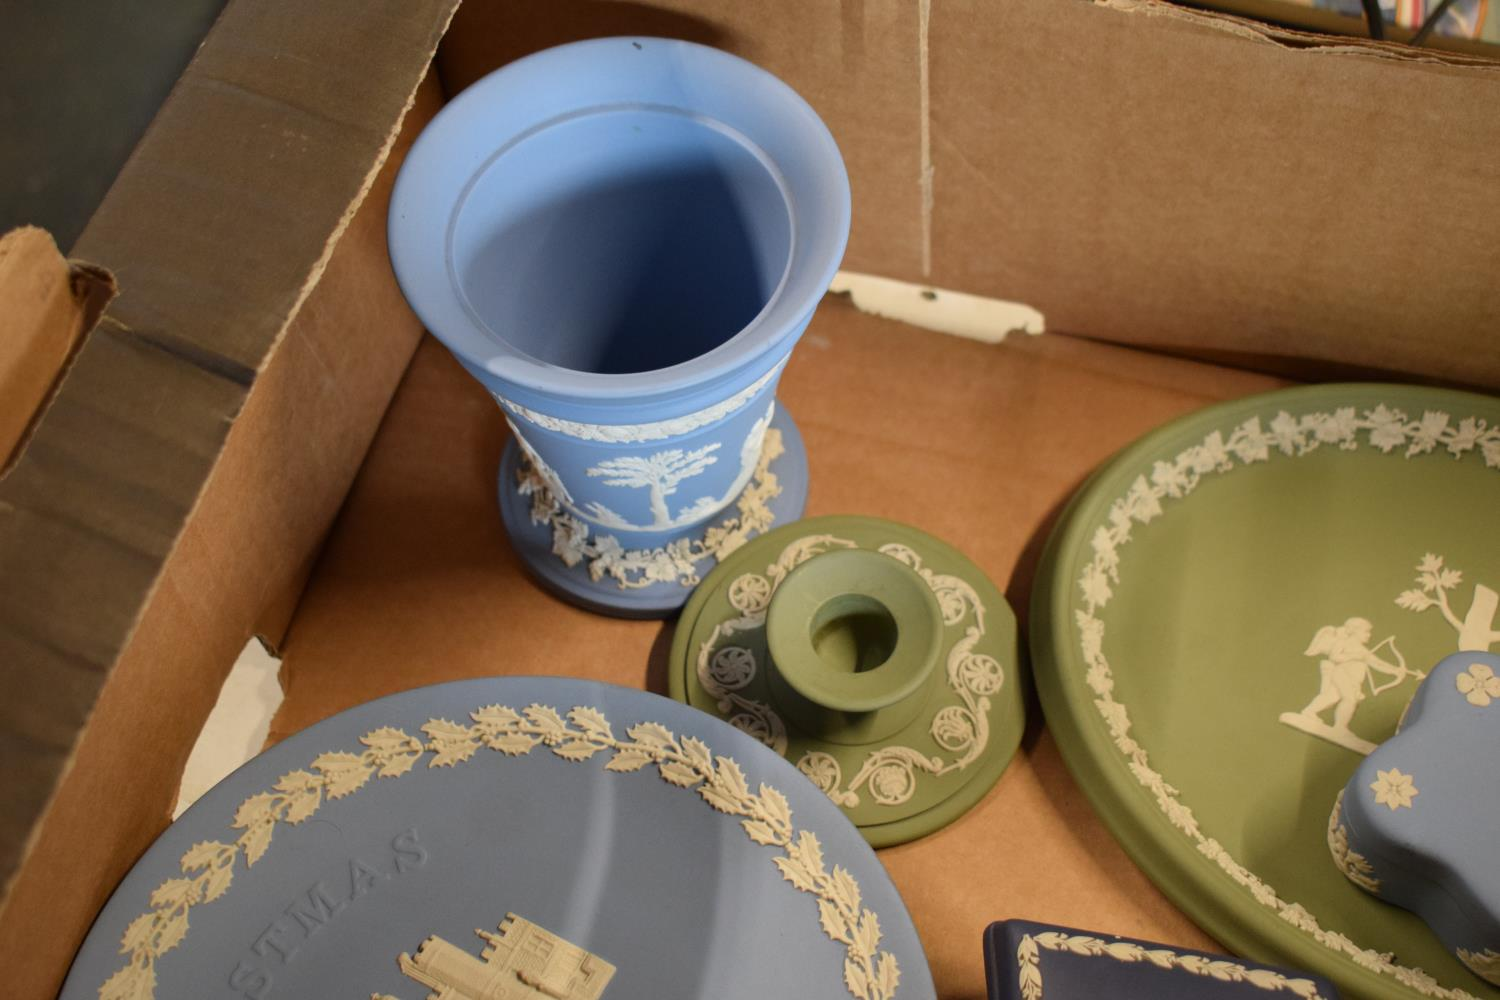 A collection of Wedgwood Jasperware to include vases, plates, trinkets etc in an array of colours to - Image 2 of 6